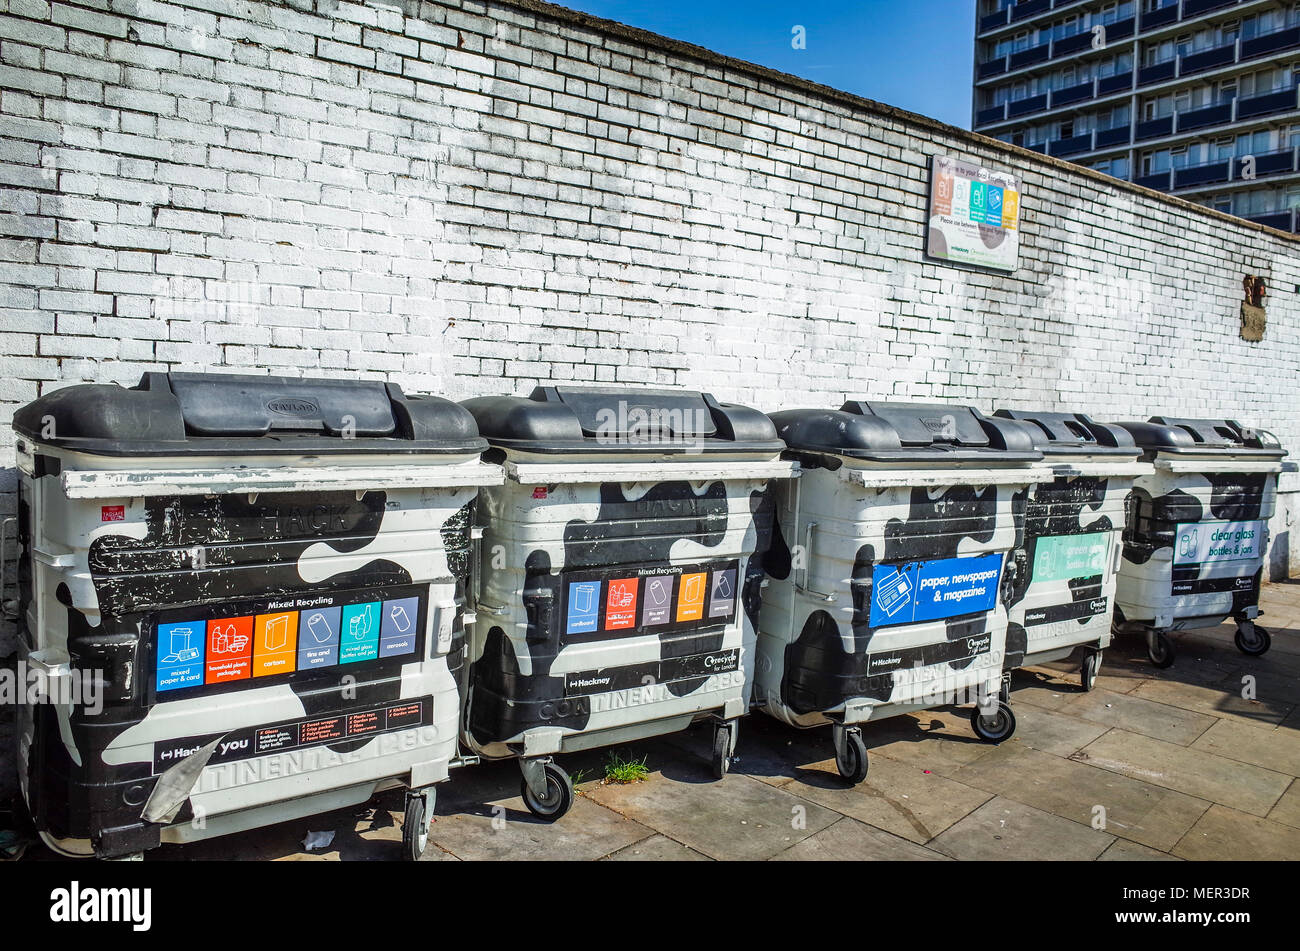 Recycling Bins in Shoreditch, near Old Street Roundabout Stock Photo